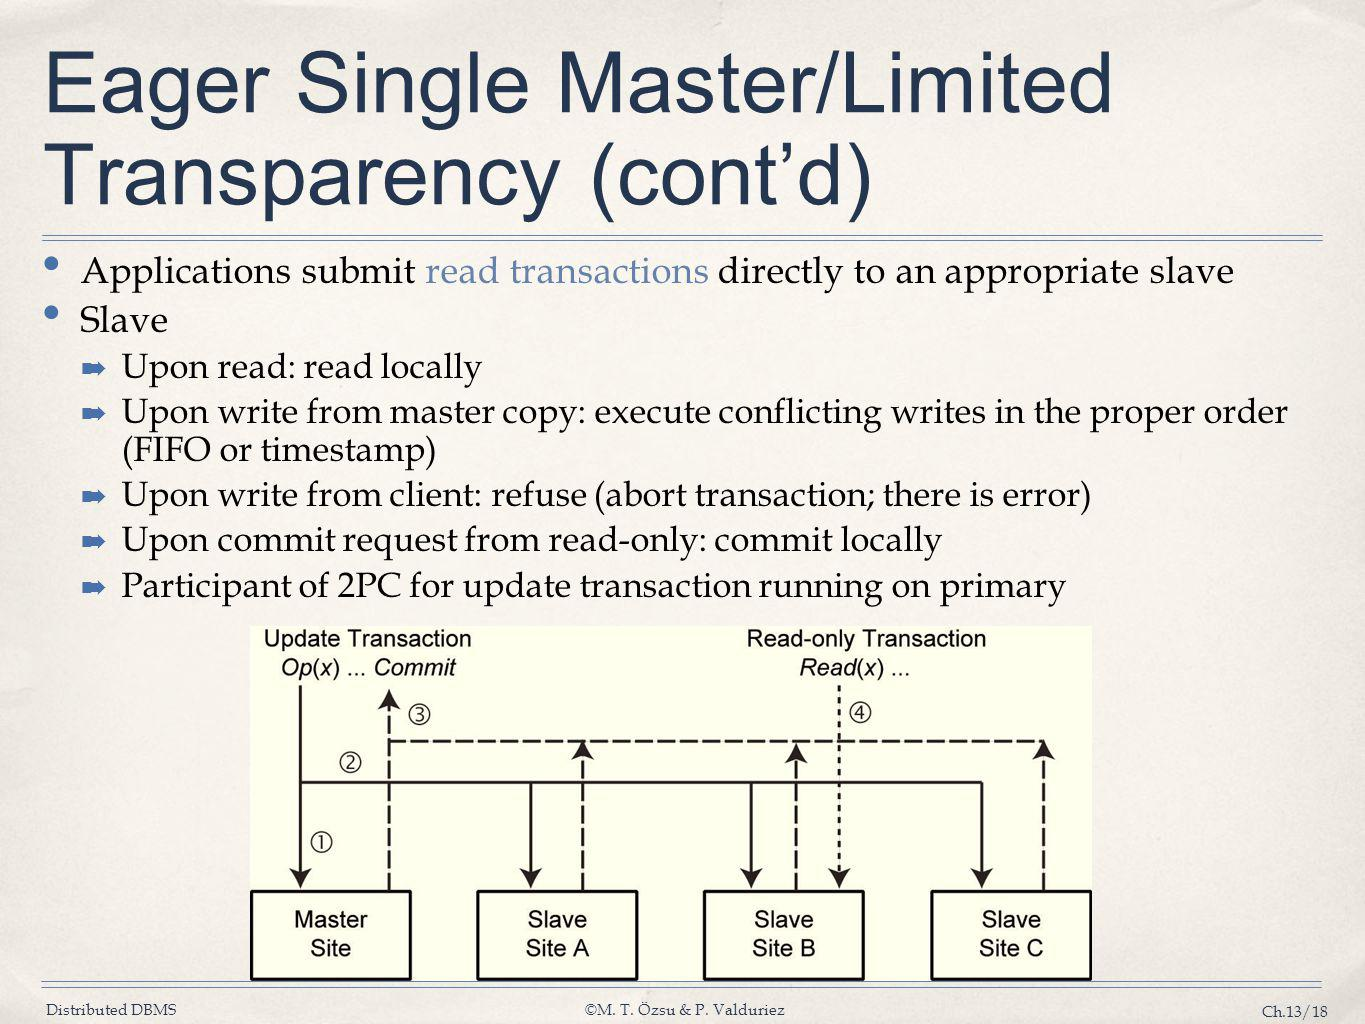 Eager Single Master/Limited Transparency (cont'd)